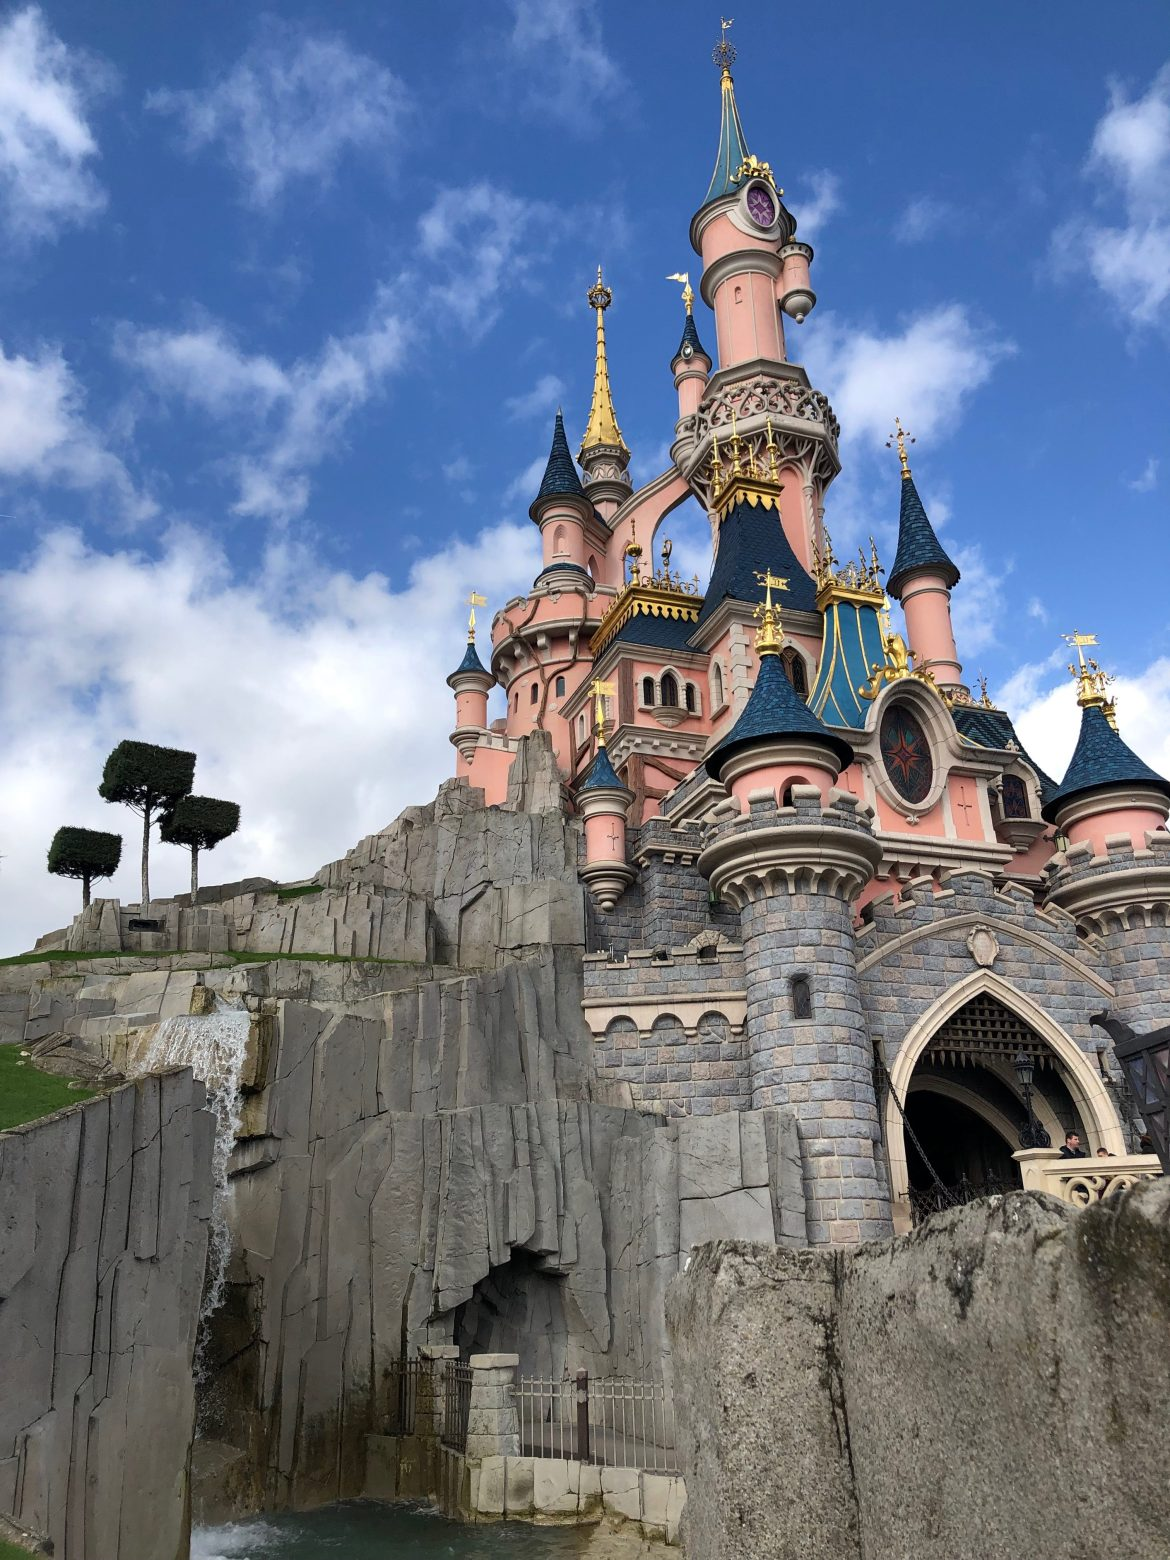 Disneyland Paris Reducing their Use of Plastics!